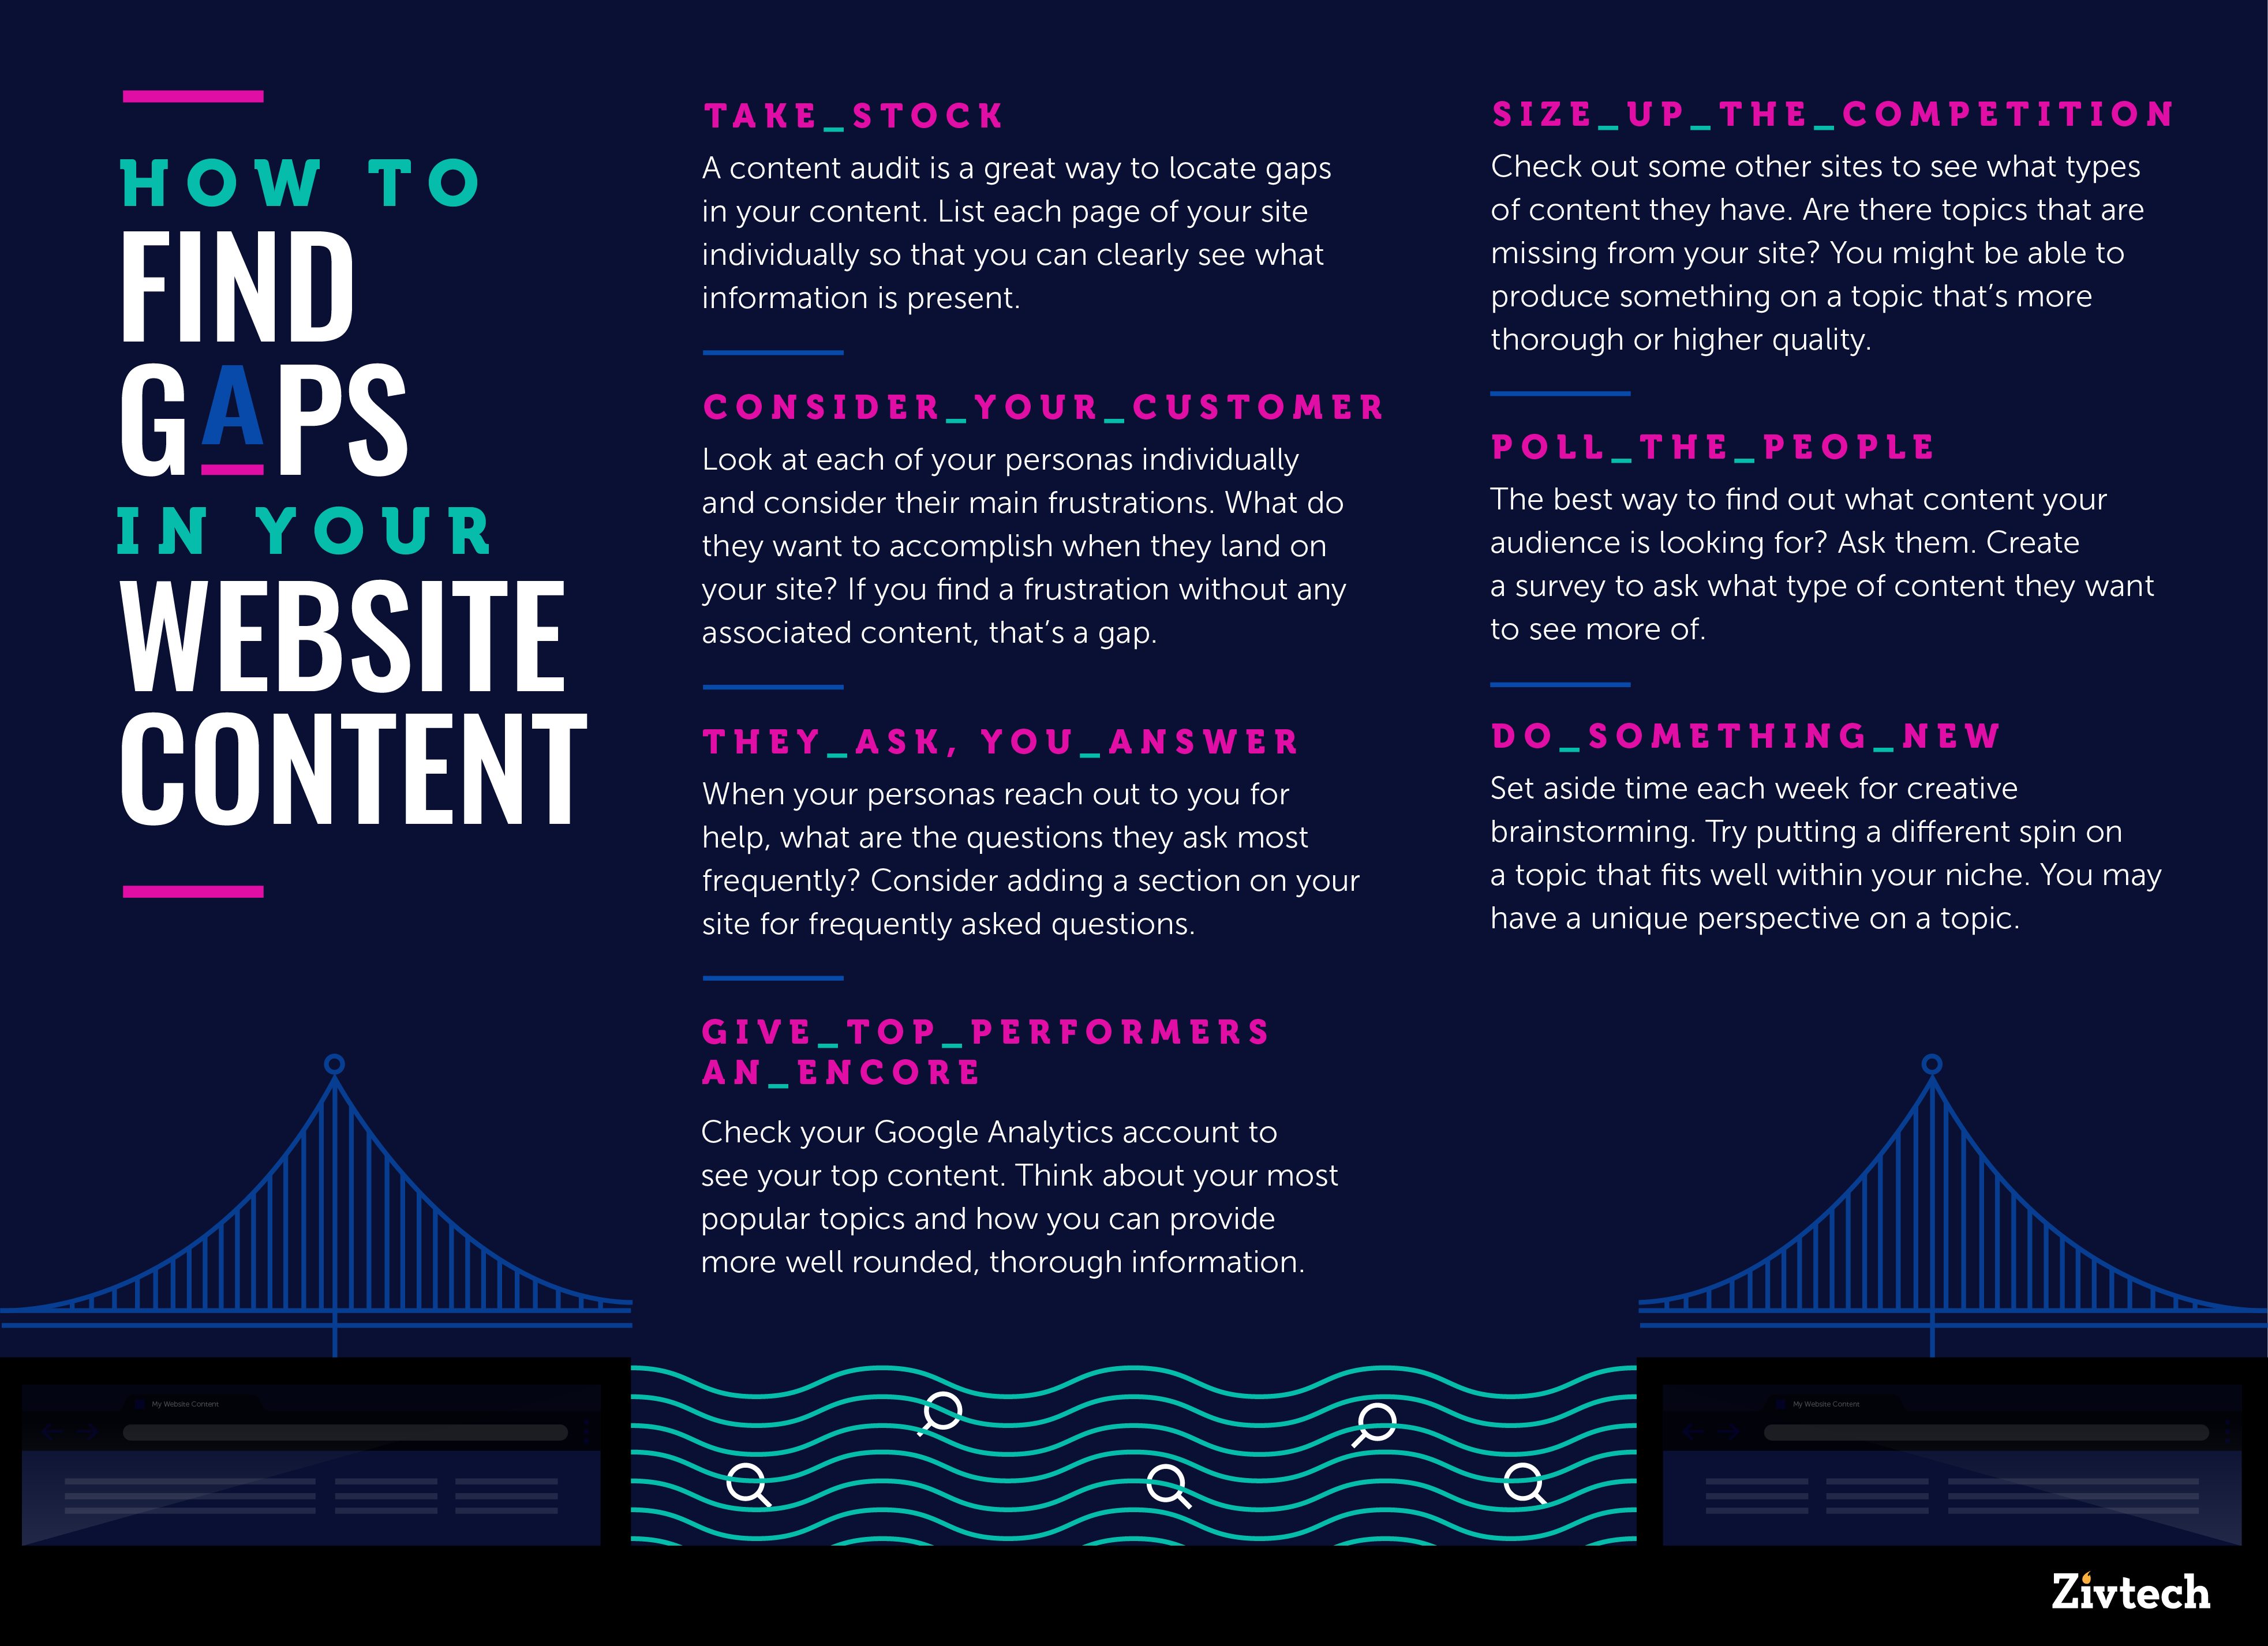 HOW TO FIND GAPS IN YOUR WEBSITE CONTENT INFOGRAPHIC